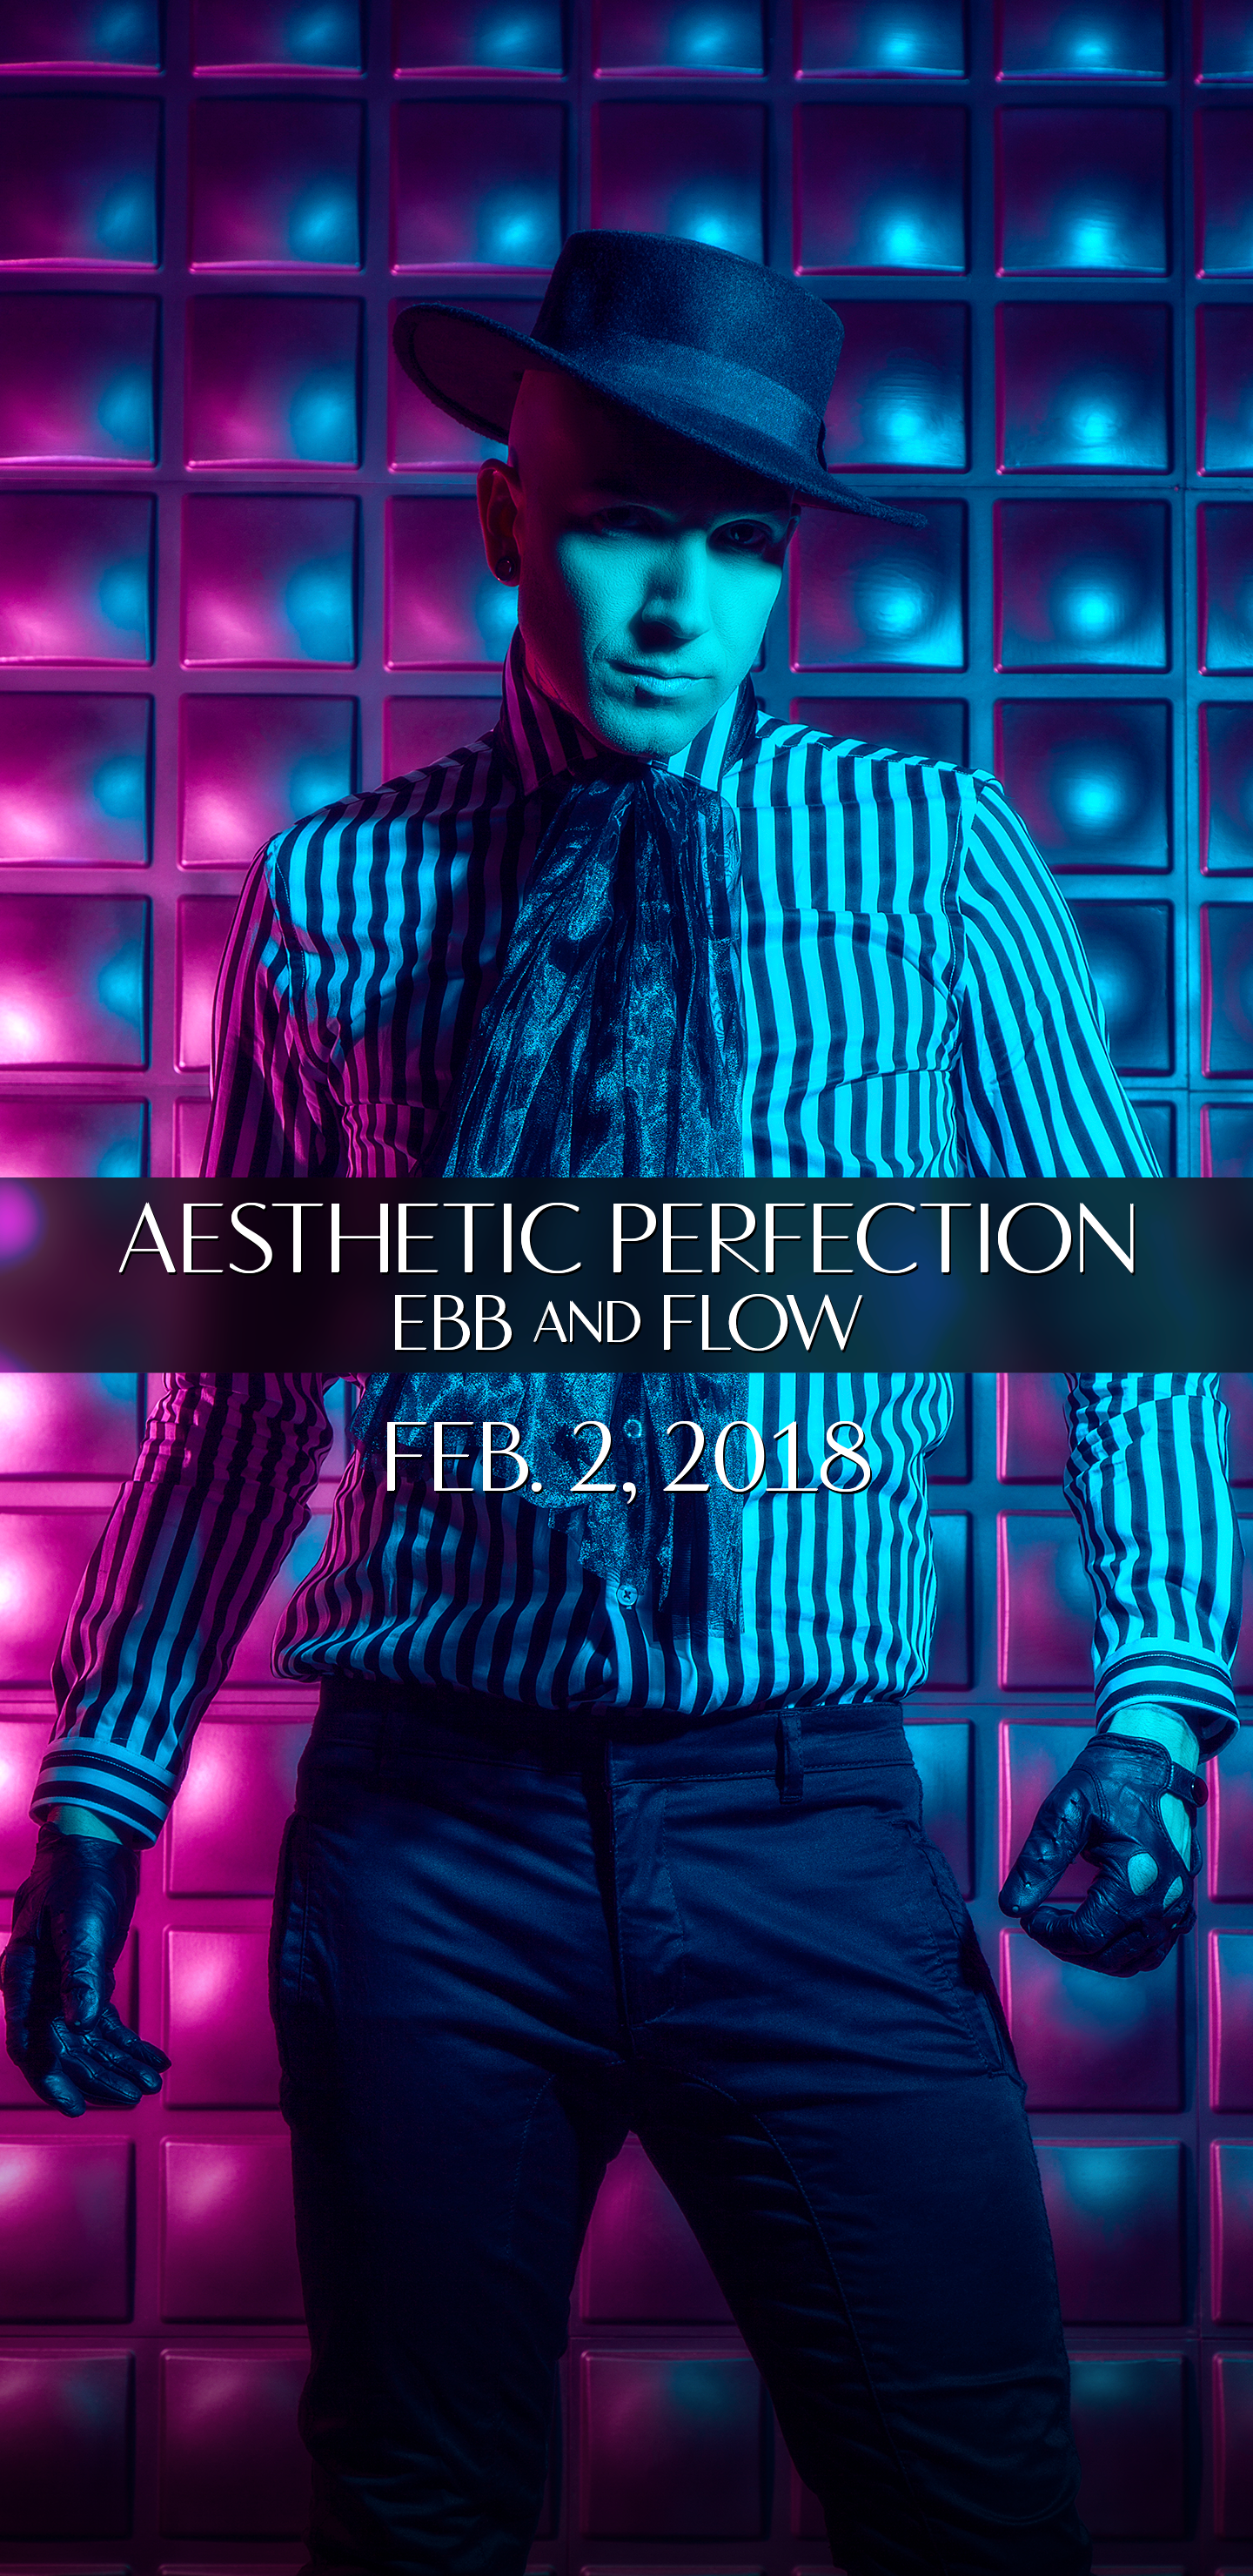 Aesthetic Perfection Downloads